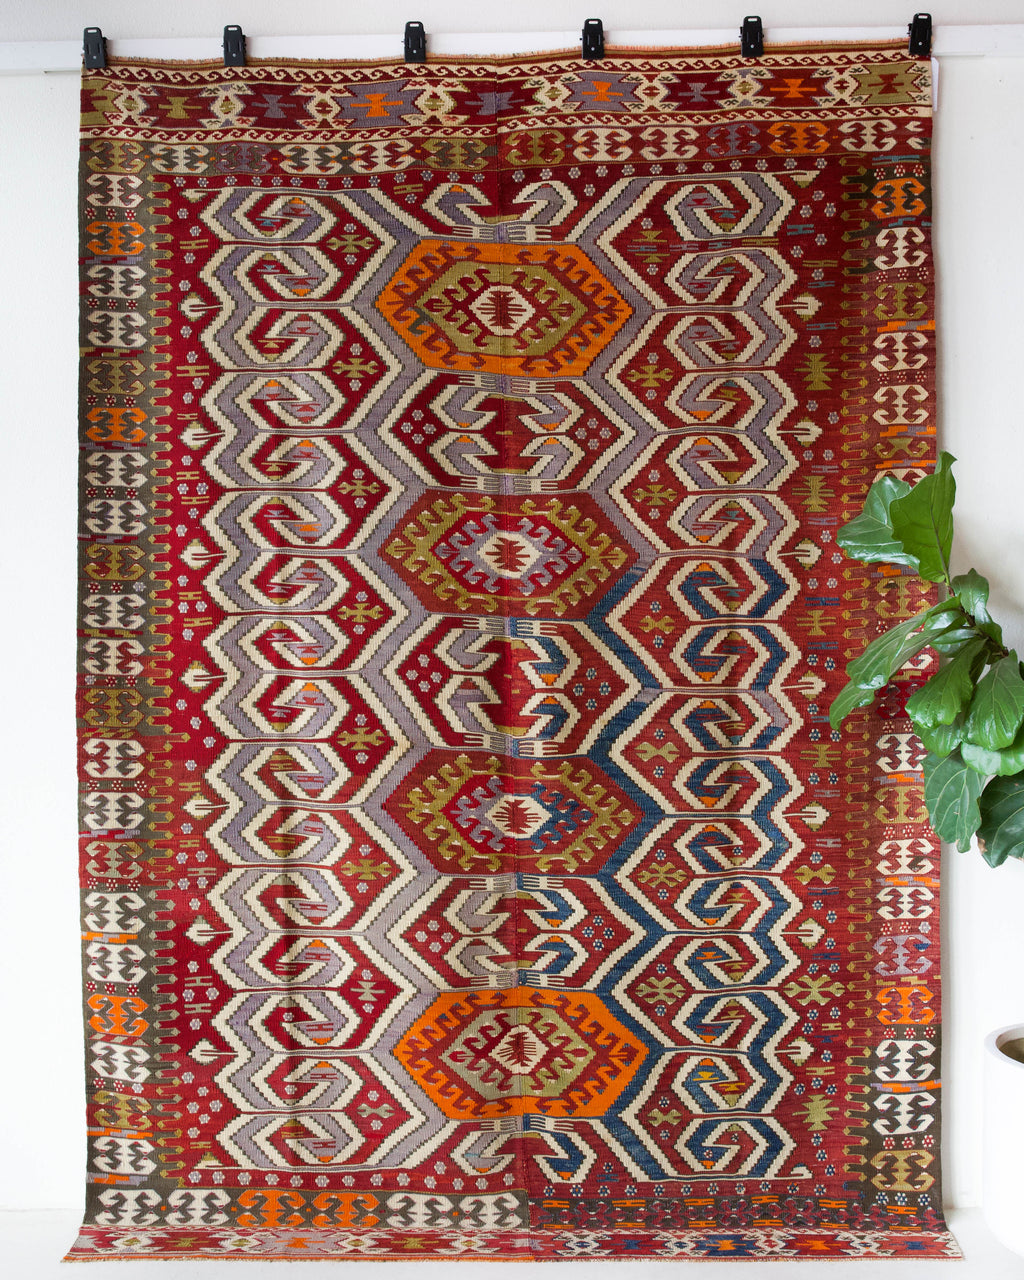 Vintage kilim rug in room decor setting, old rug, antique rug, pastel colors, faded colors, Turkish rug, vintage rug, soft rug, Portland, Oregon, rug store, rug shop, local shop, bold colors, bright colors, faded colors, antique kilim